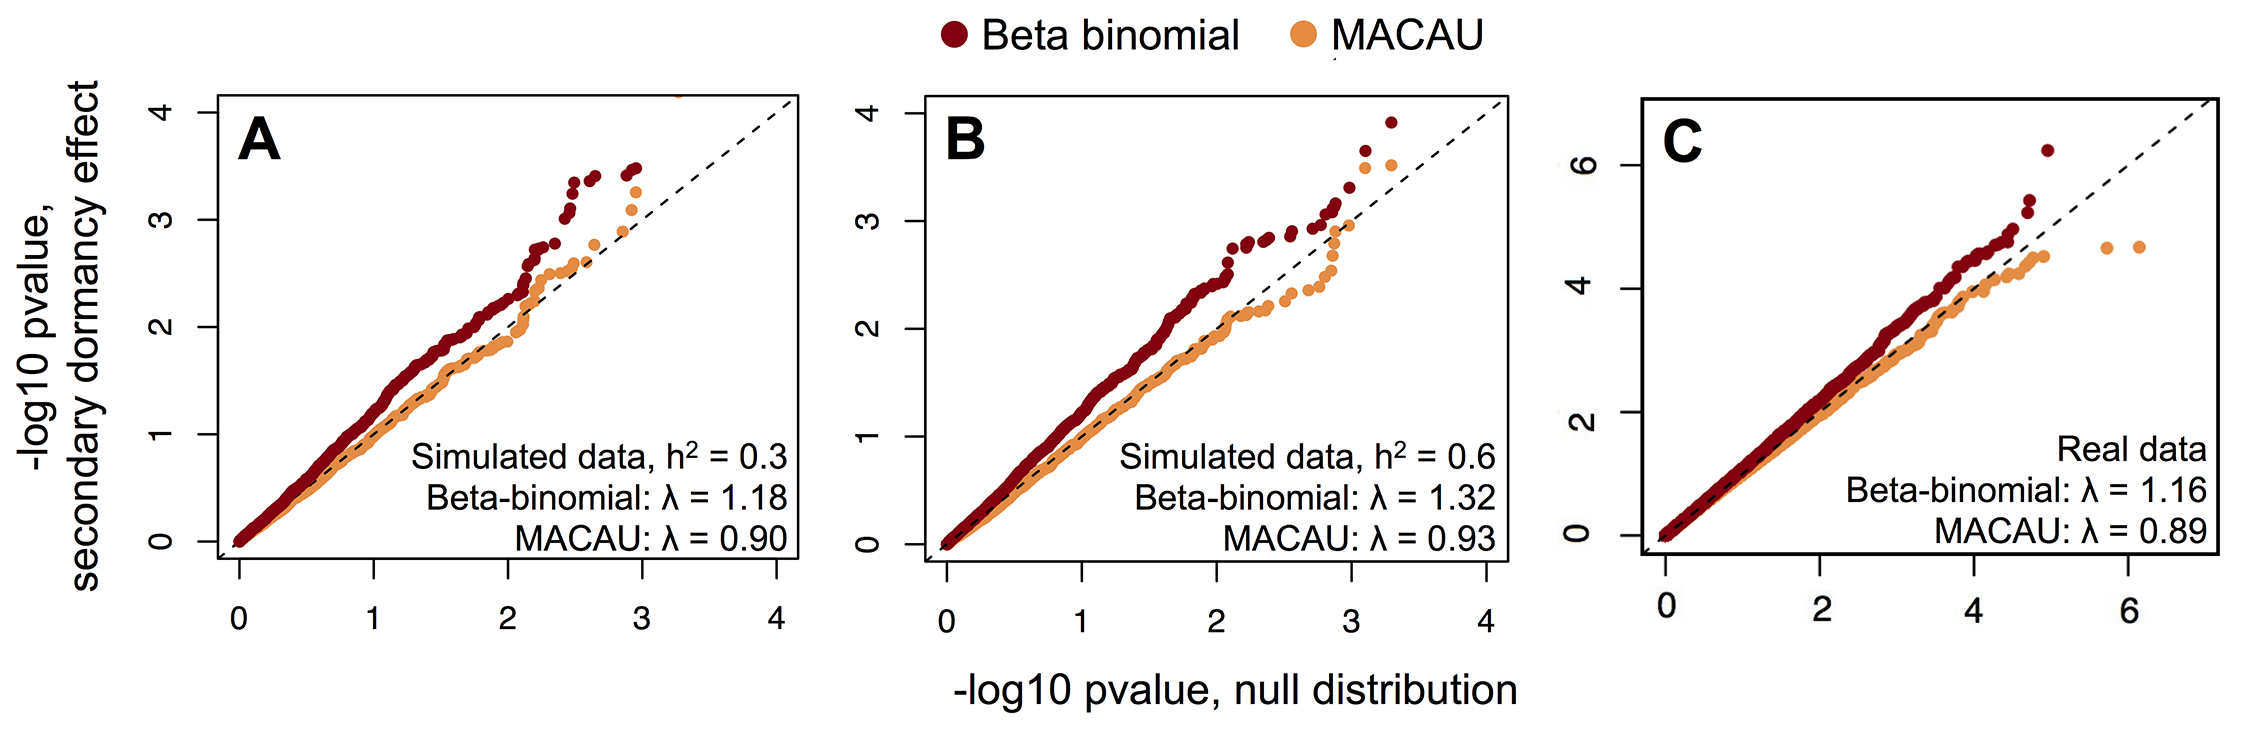 MACAU appropriately controls for genetic covariance in simulated and real WGBS data and eliminates false positive identification of differentially methylated sites.